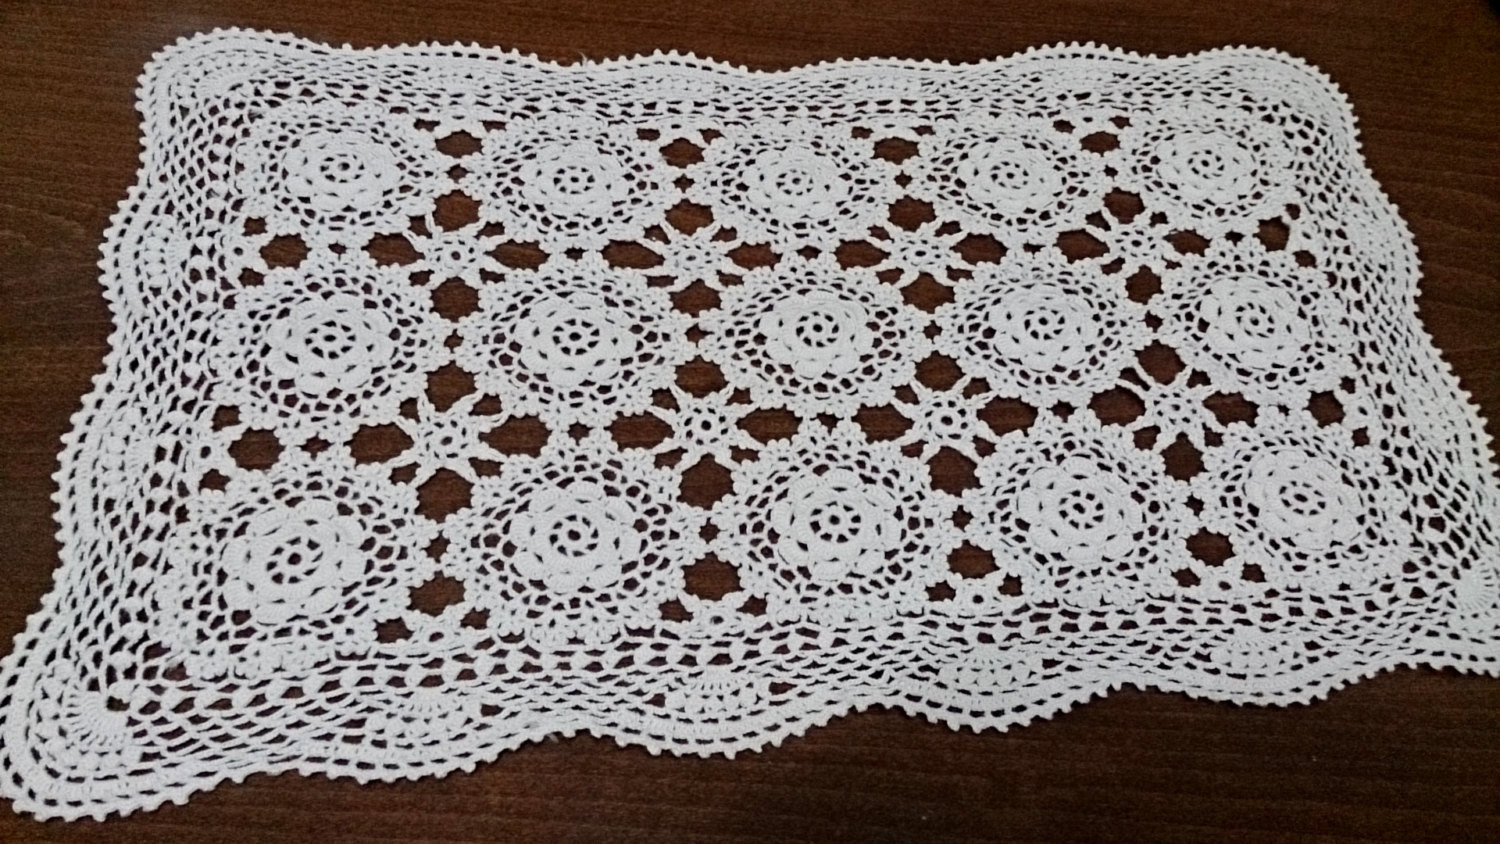 Square Doilies Lovely Vintage Doily Crocheted Rectangular Doily or Table Of Lovely 50 Pictures Square Doilies